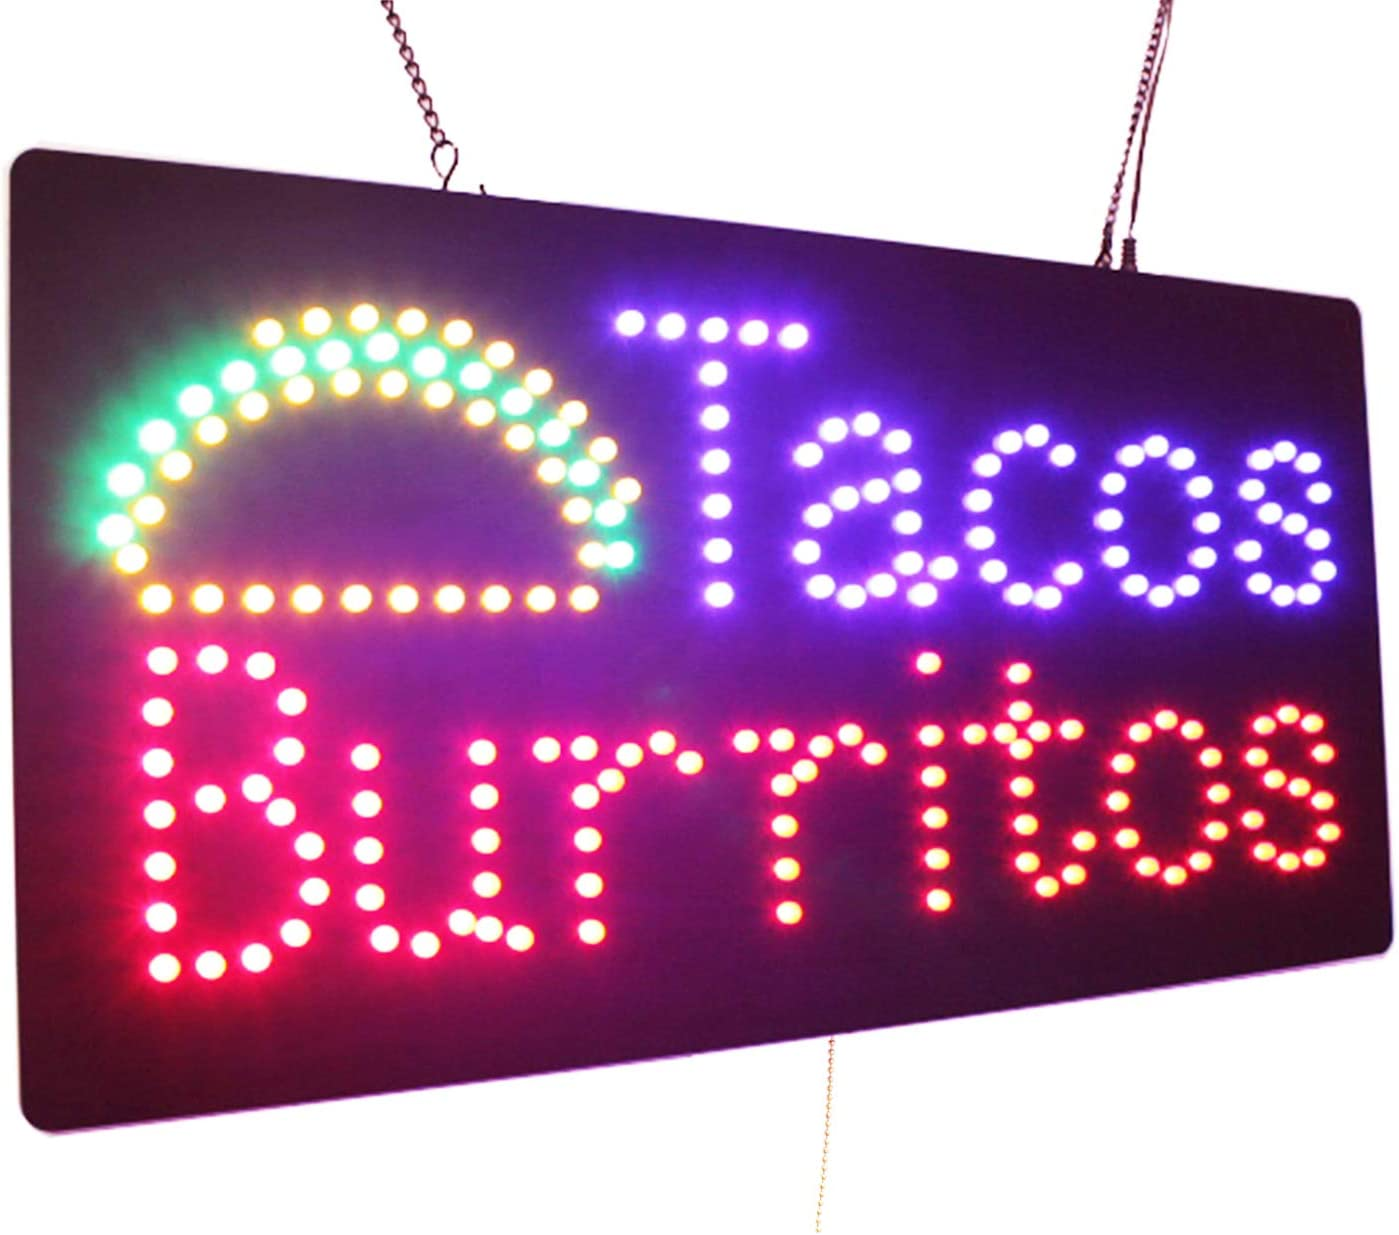 Tacos Burritos Sign, TOPKING Signage, LED Neon Open, Store, Window, Shop, Business, Display, Grand Opening Gift